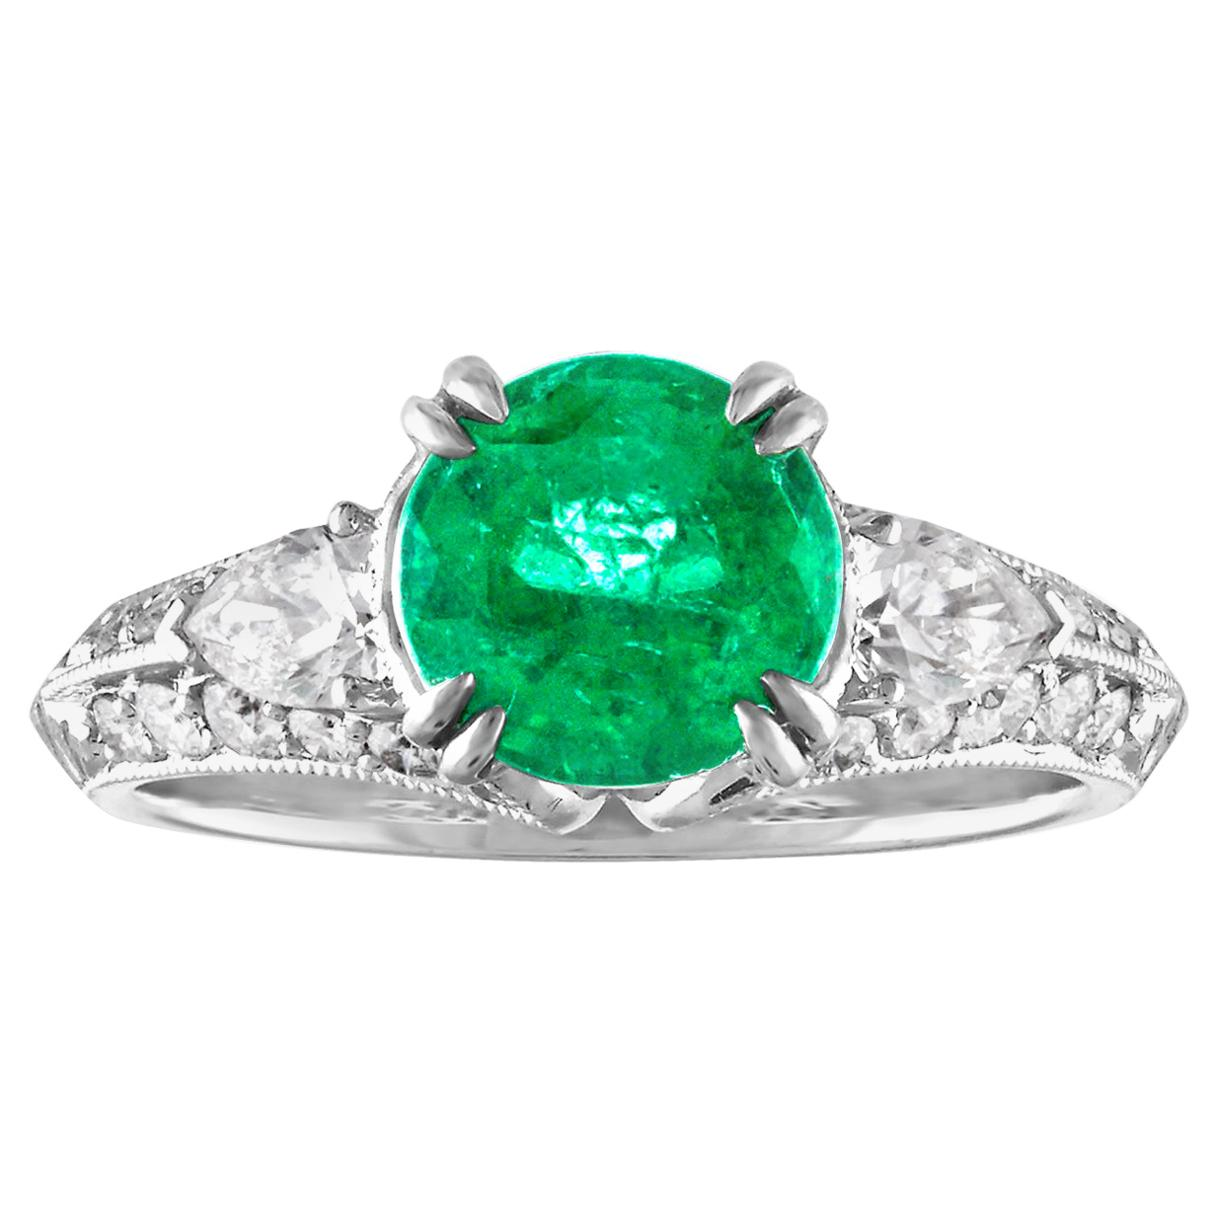 GIA Certified 1.78 Carat Round Emerald Diamond Gold Milgrain Filigree Ring